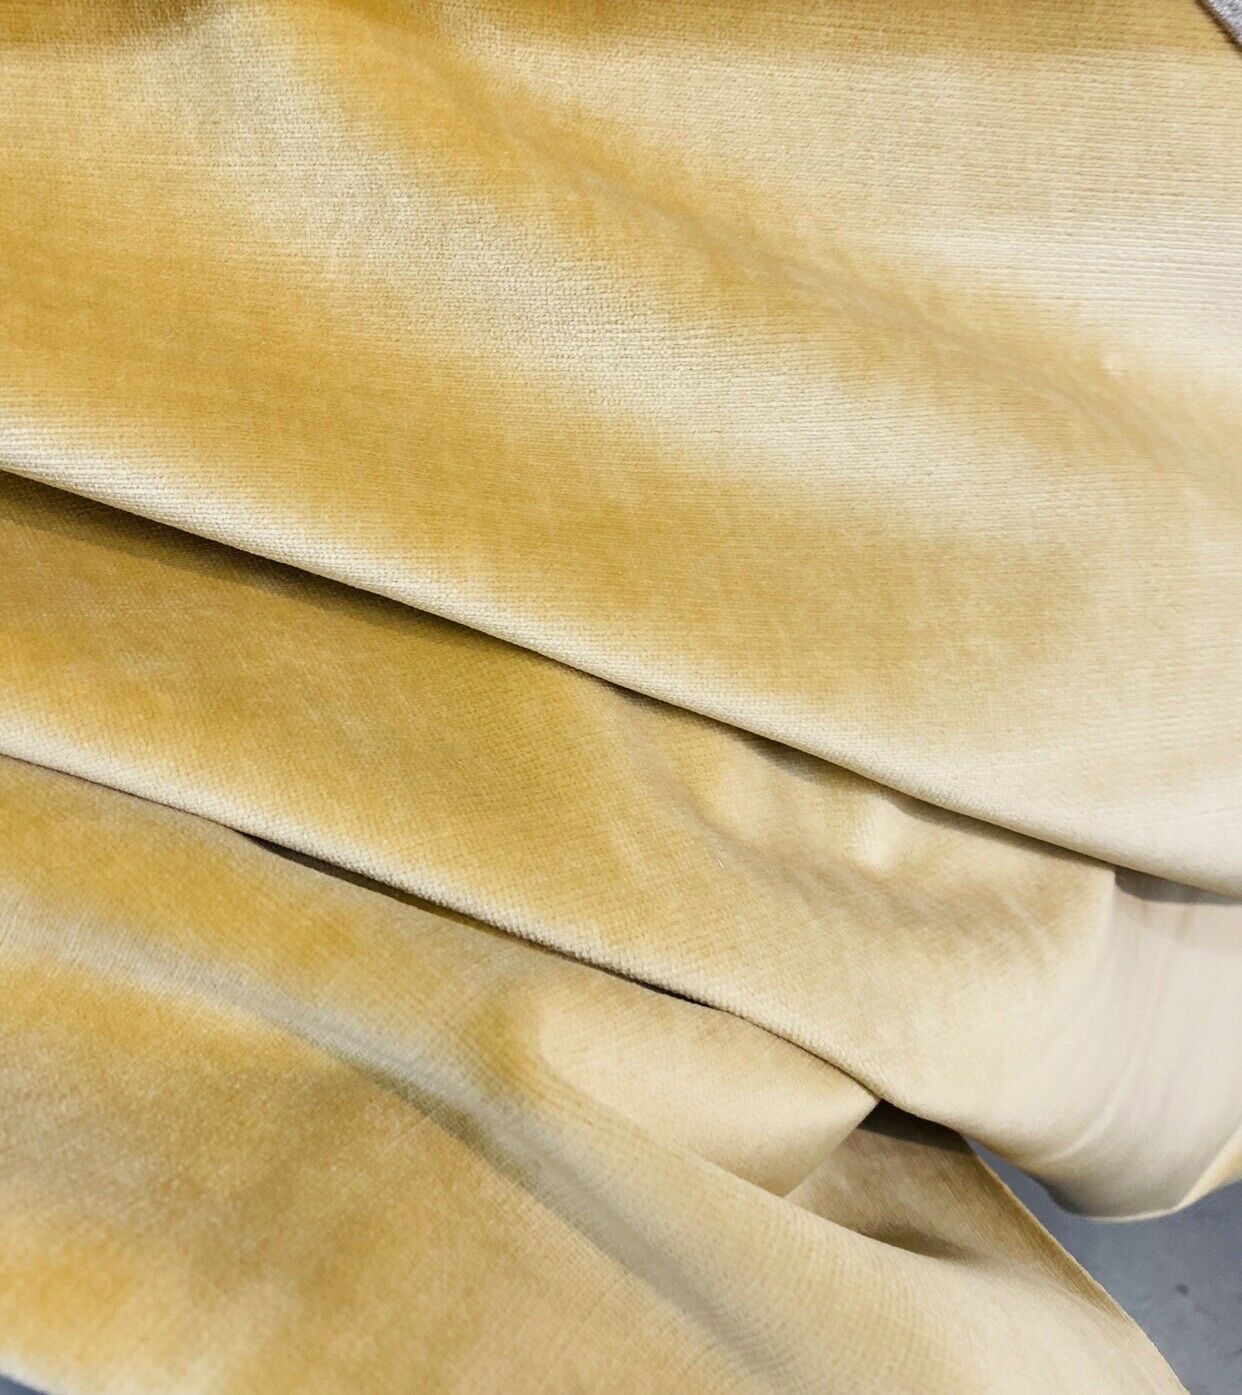 NEW! Prince Burgess- Designer Cotton Soft Velvet Upholstery Fabric - Camel Yellow - By The Yard